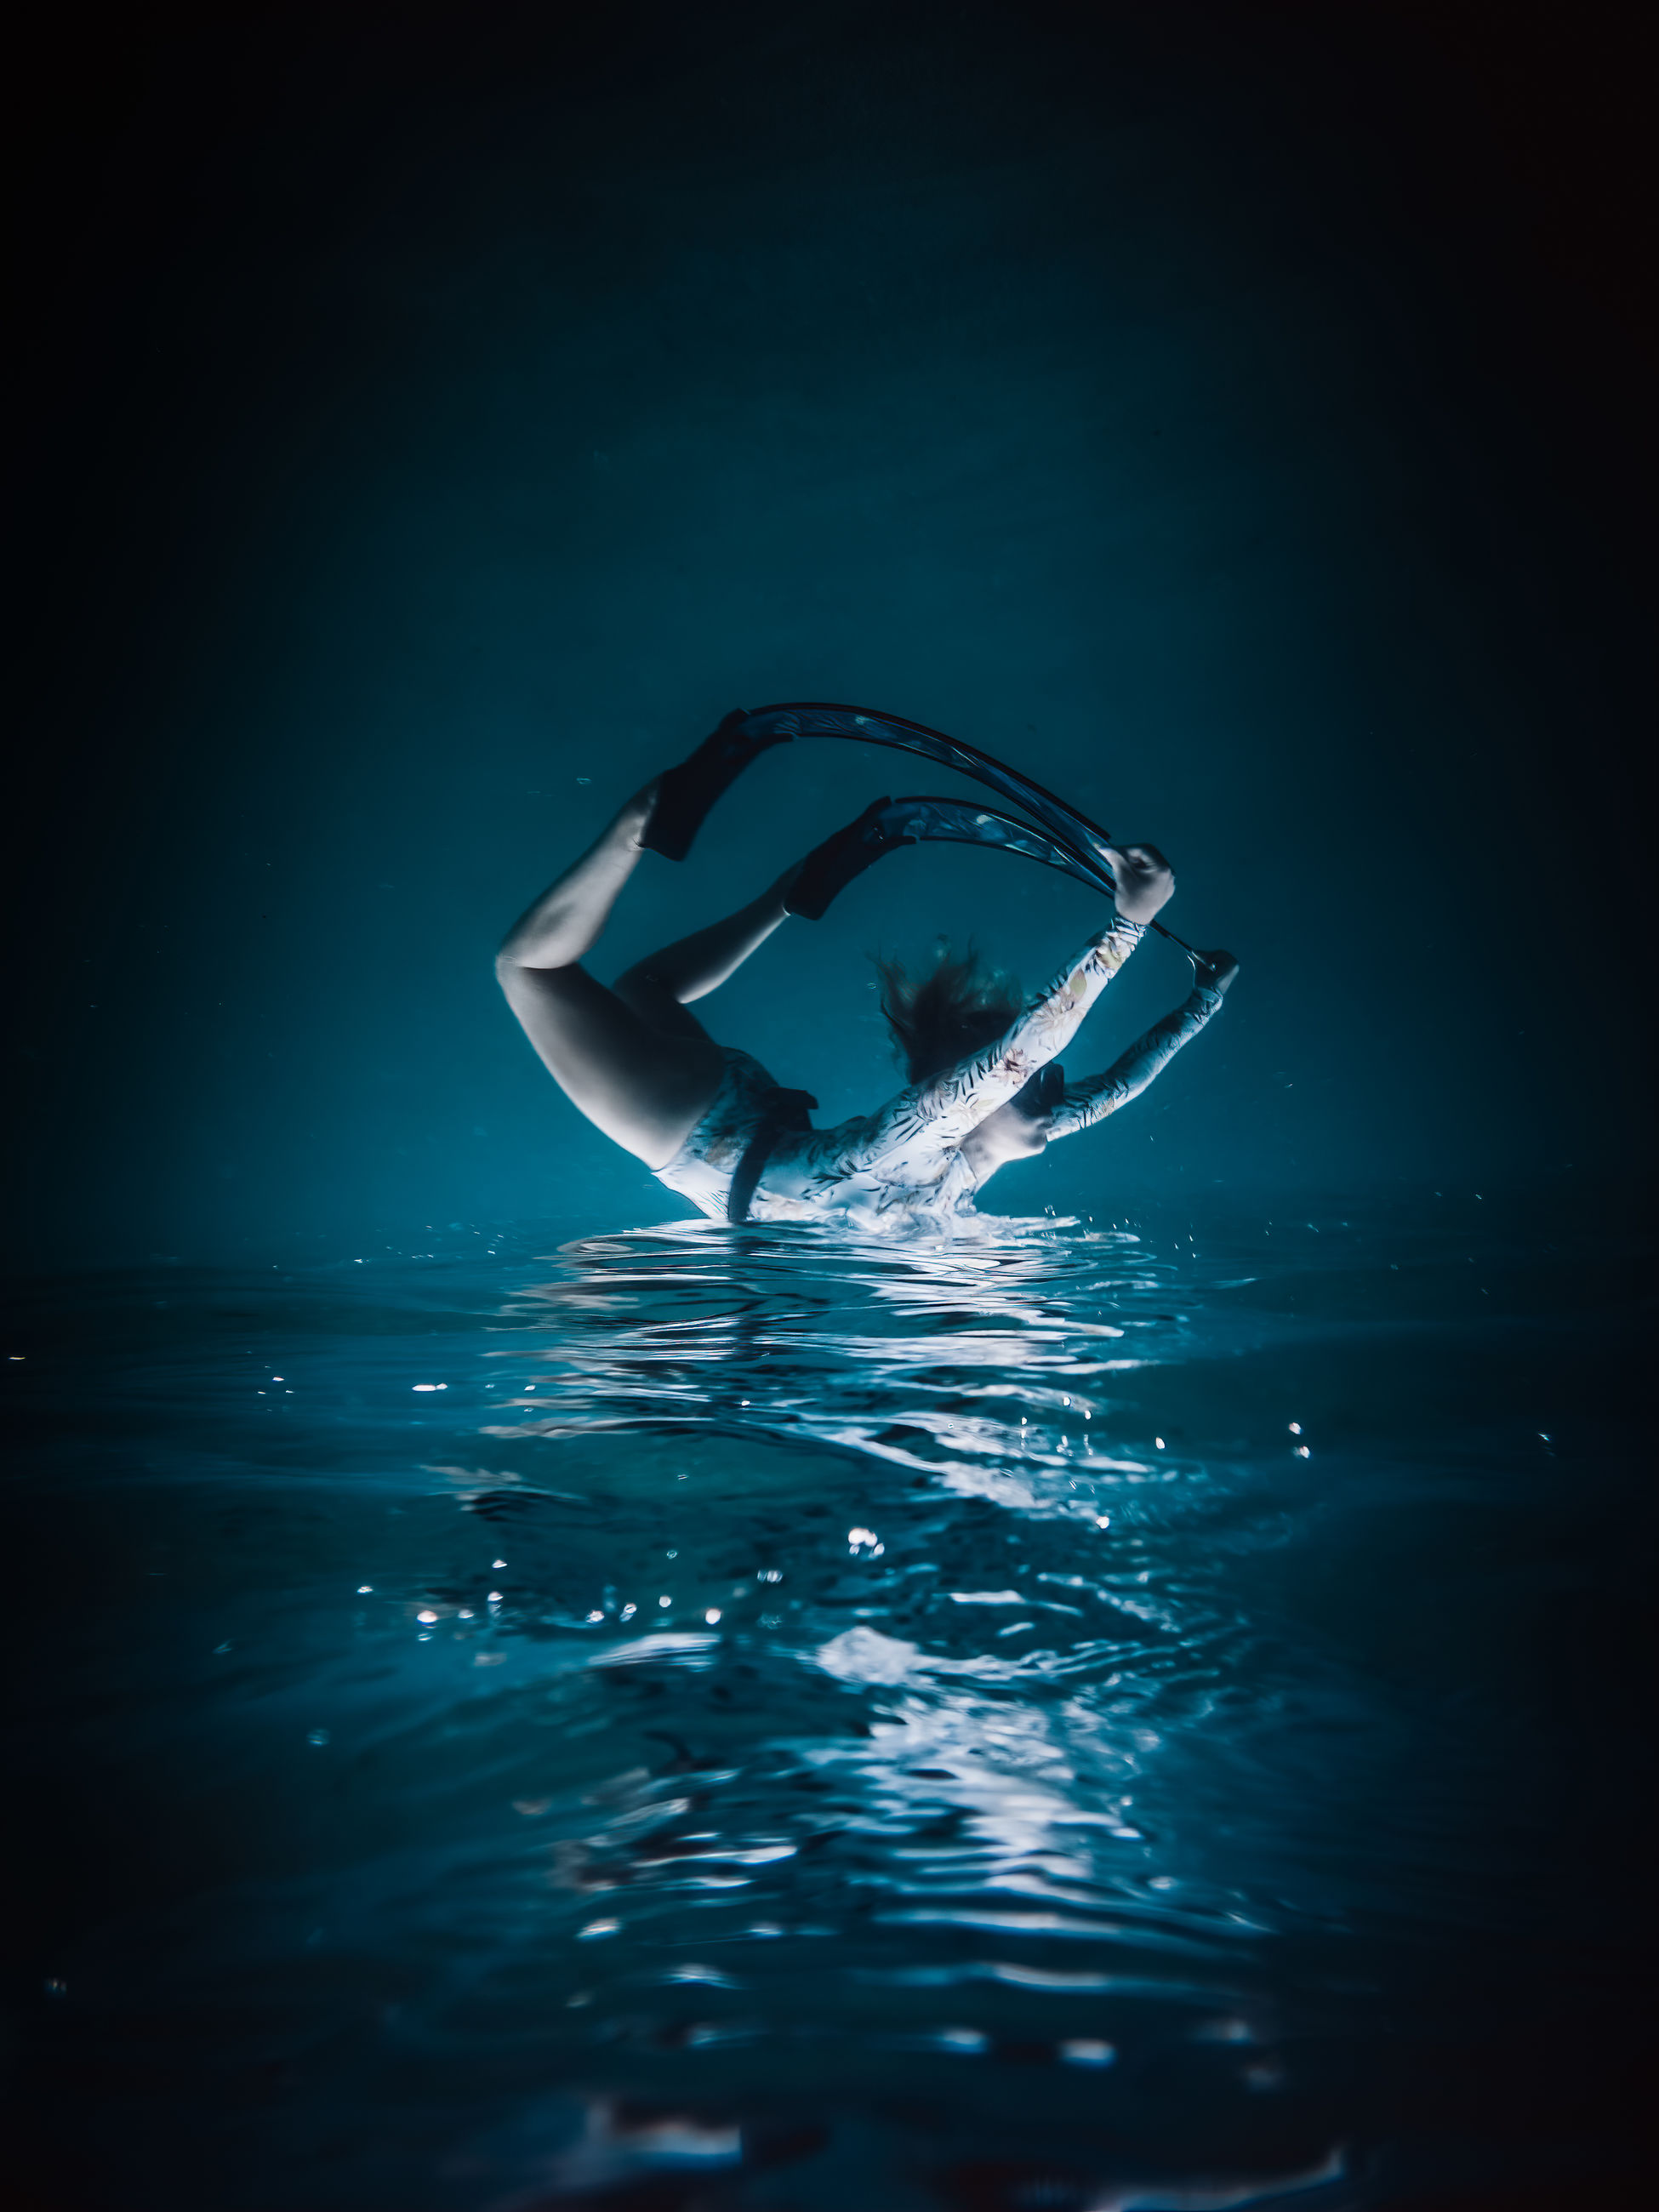 water, reflection, blue, wave, sea, swimming, nature, underwater, darkness, sinking, ocean, no people, vehicle, light, motion, rippled, outdoors, floating on water